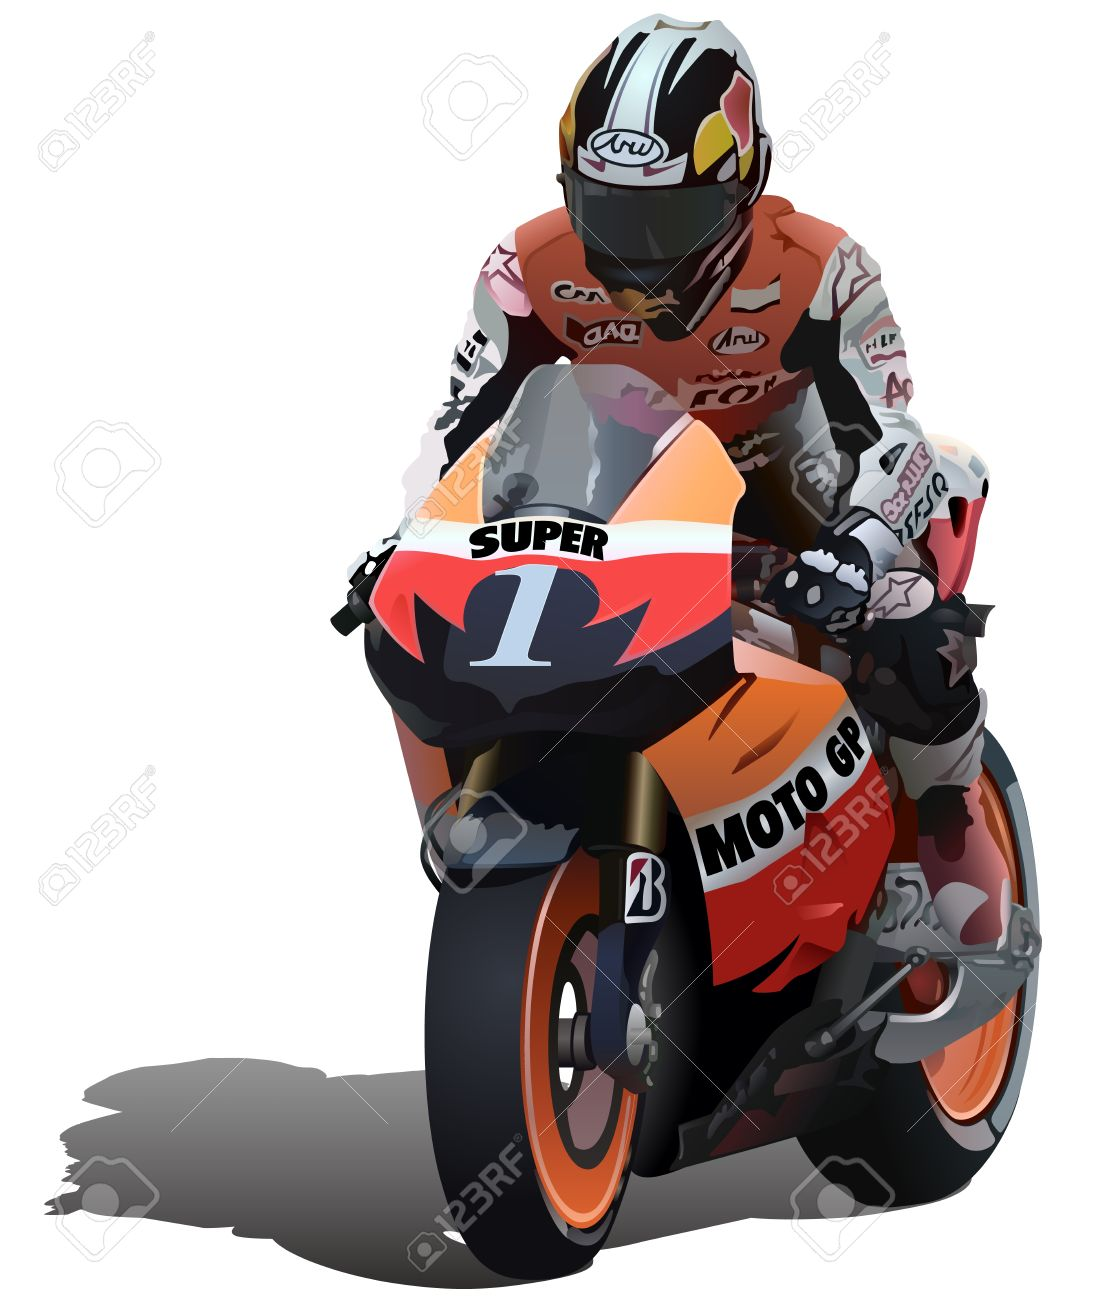 Racing motorcycle clipart - Clipground